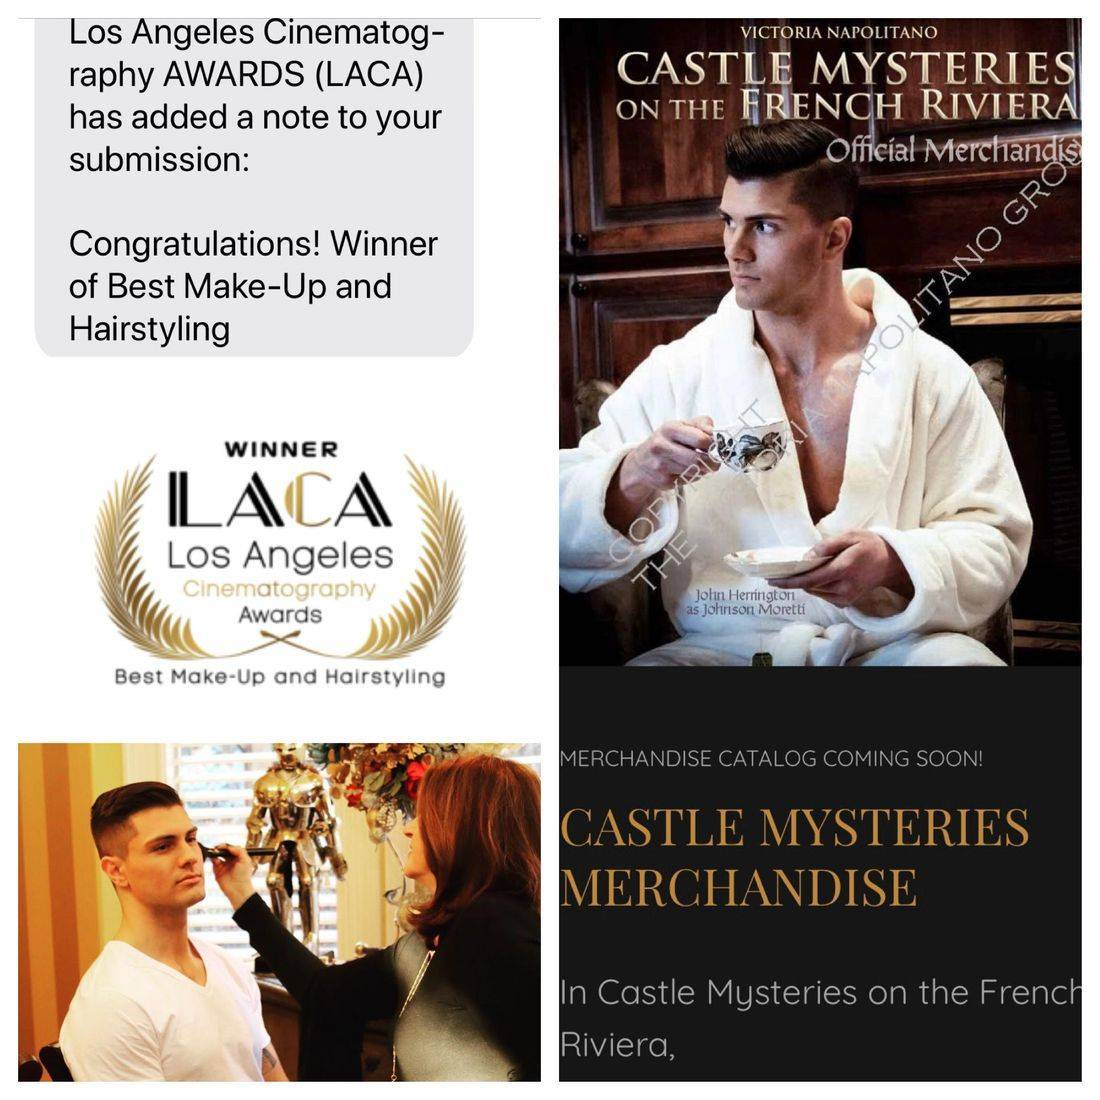 Yolanda Thayermobile makeup& hair artist for Castle Mysteries of the French Rivera